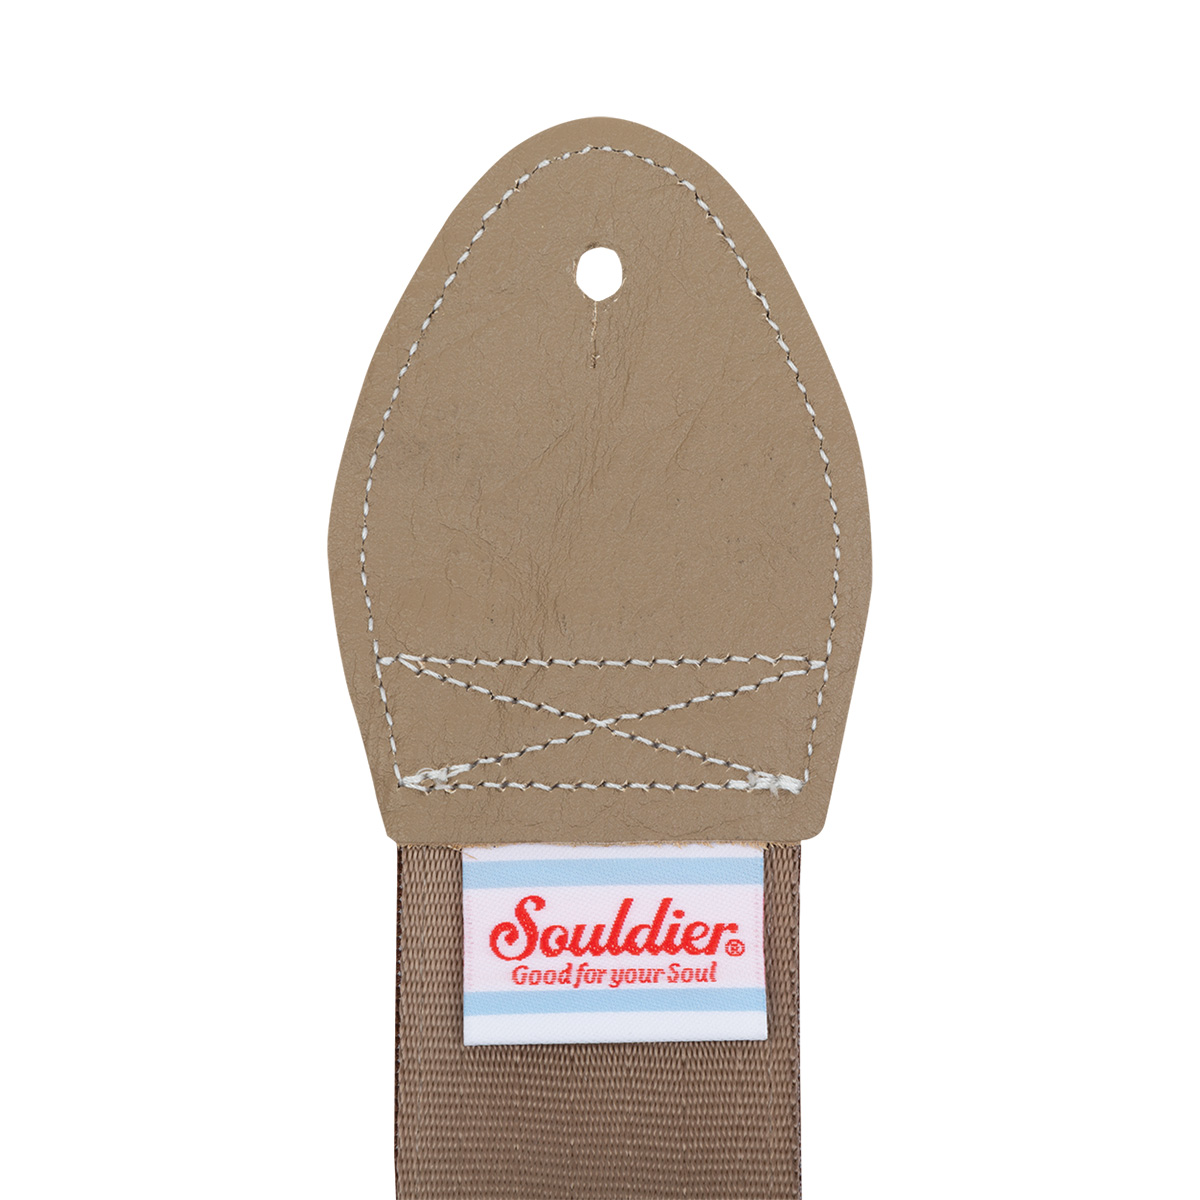 THE DECEMBERISTS SOULDIER LOVEBIRDS GUITAR STRAP - BROWN